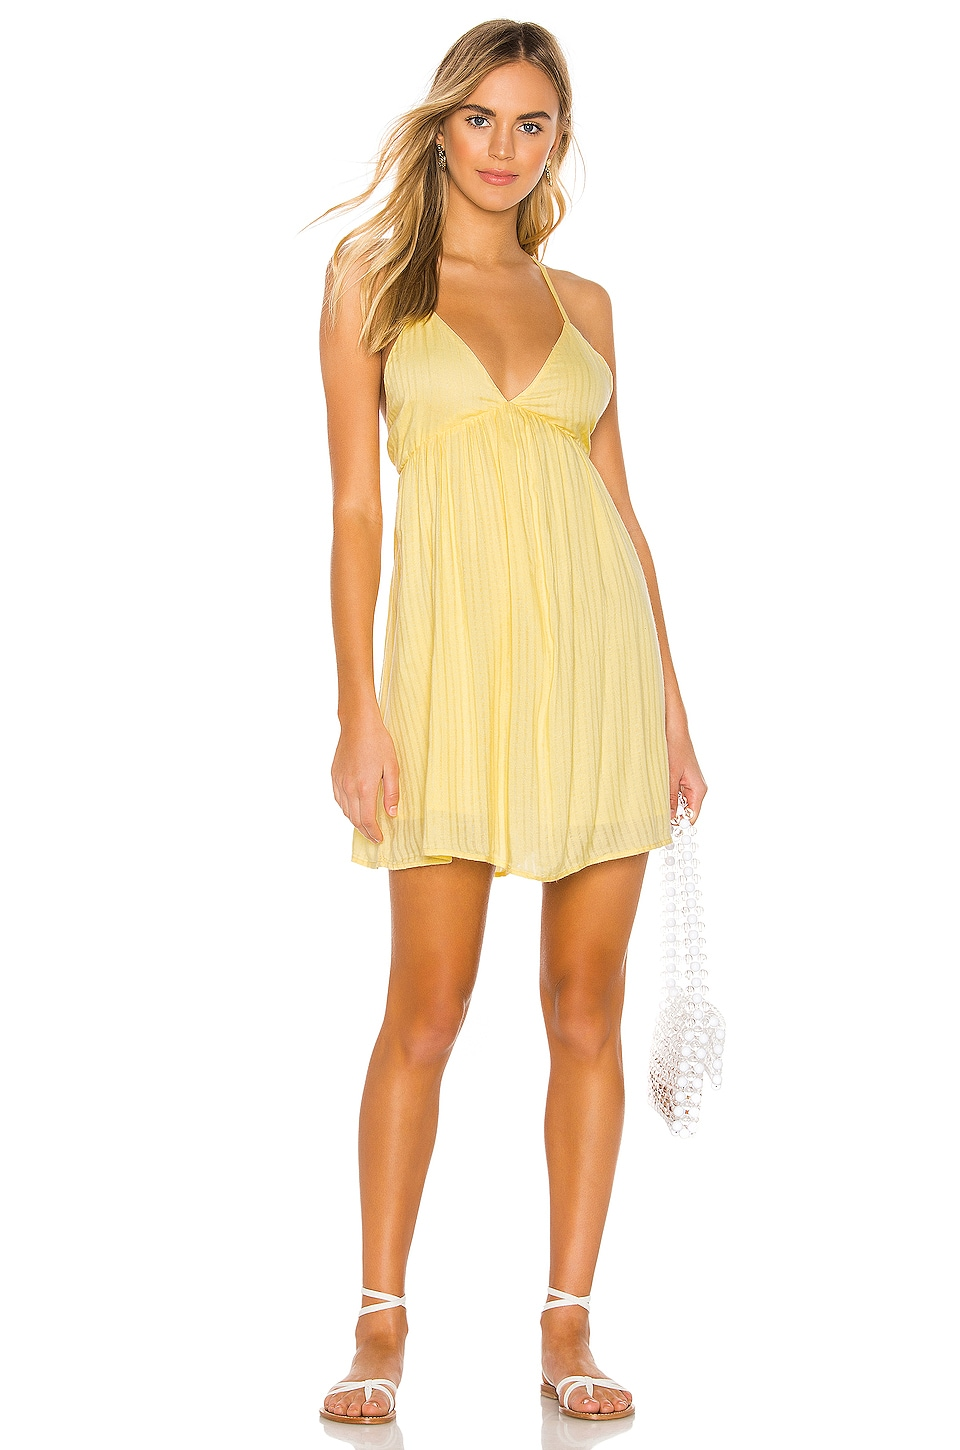 AMUSE SOCIETY Day Tripper Strappy Dress in Lemon